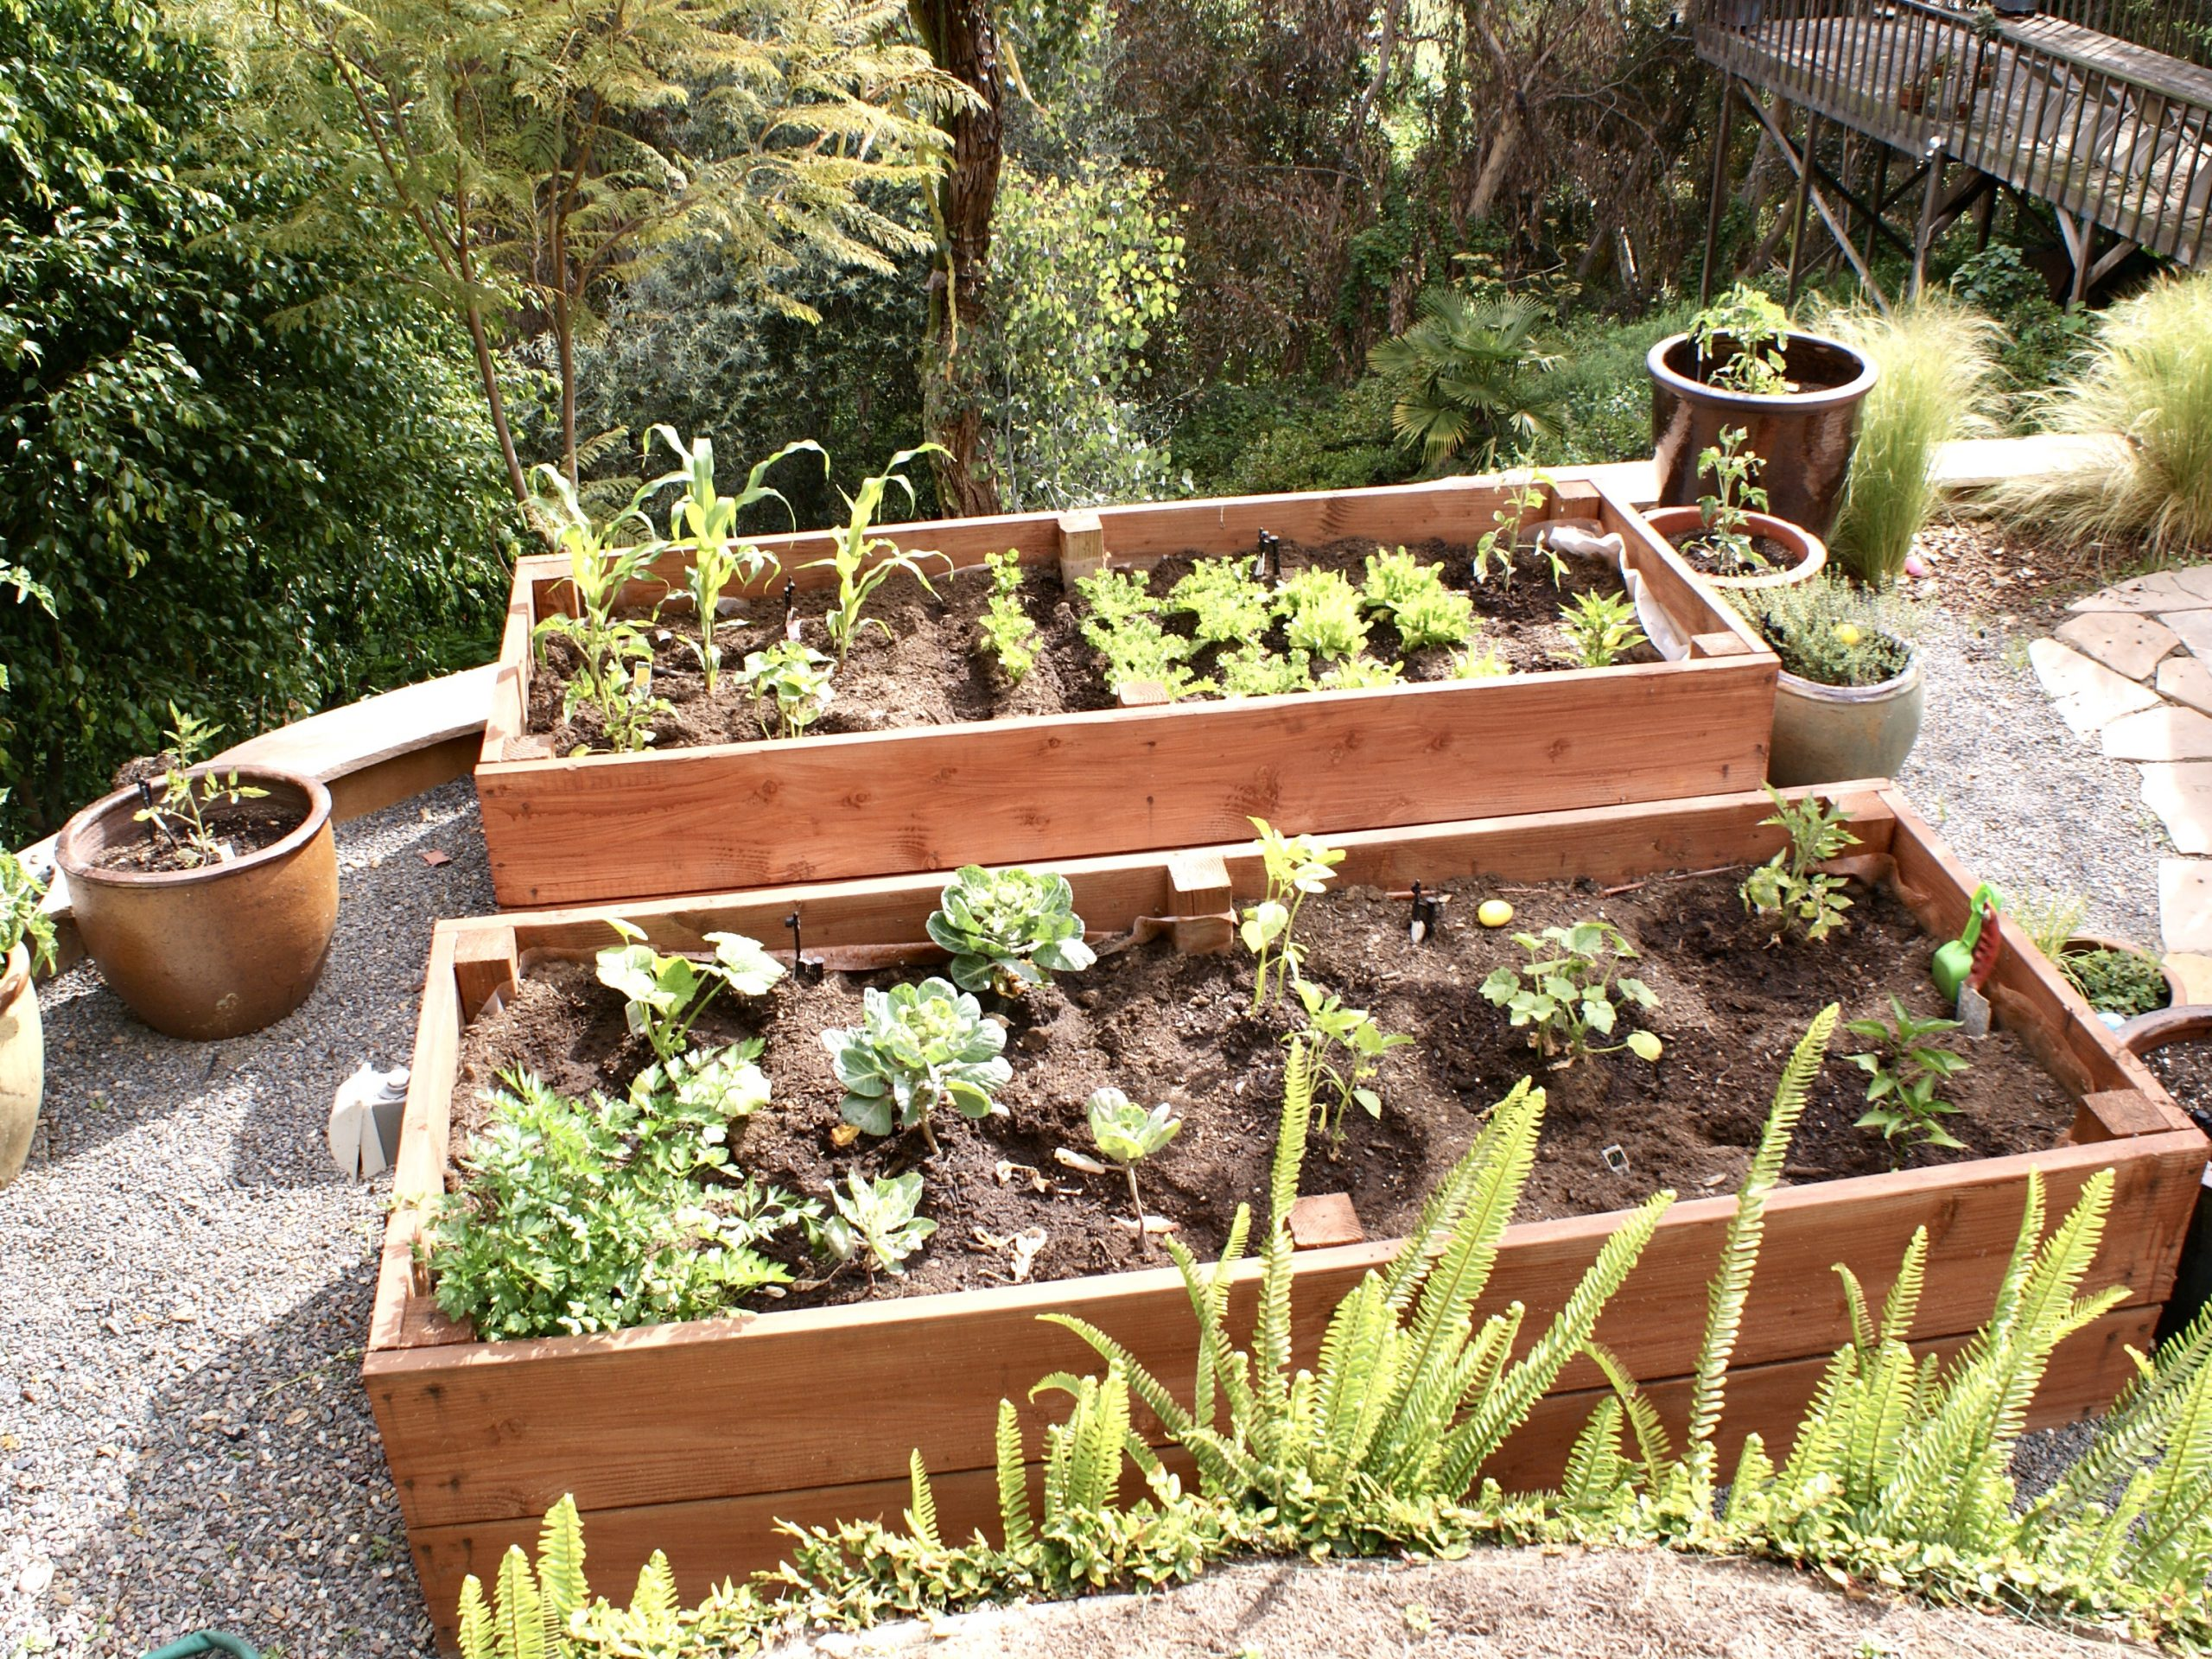 How To Create A Raised Garden Bed for Growing Veggies